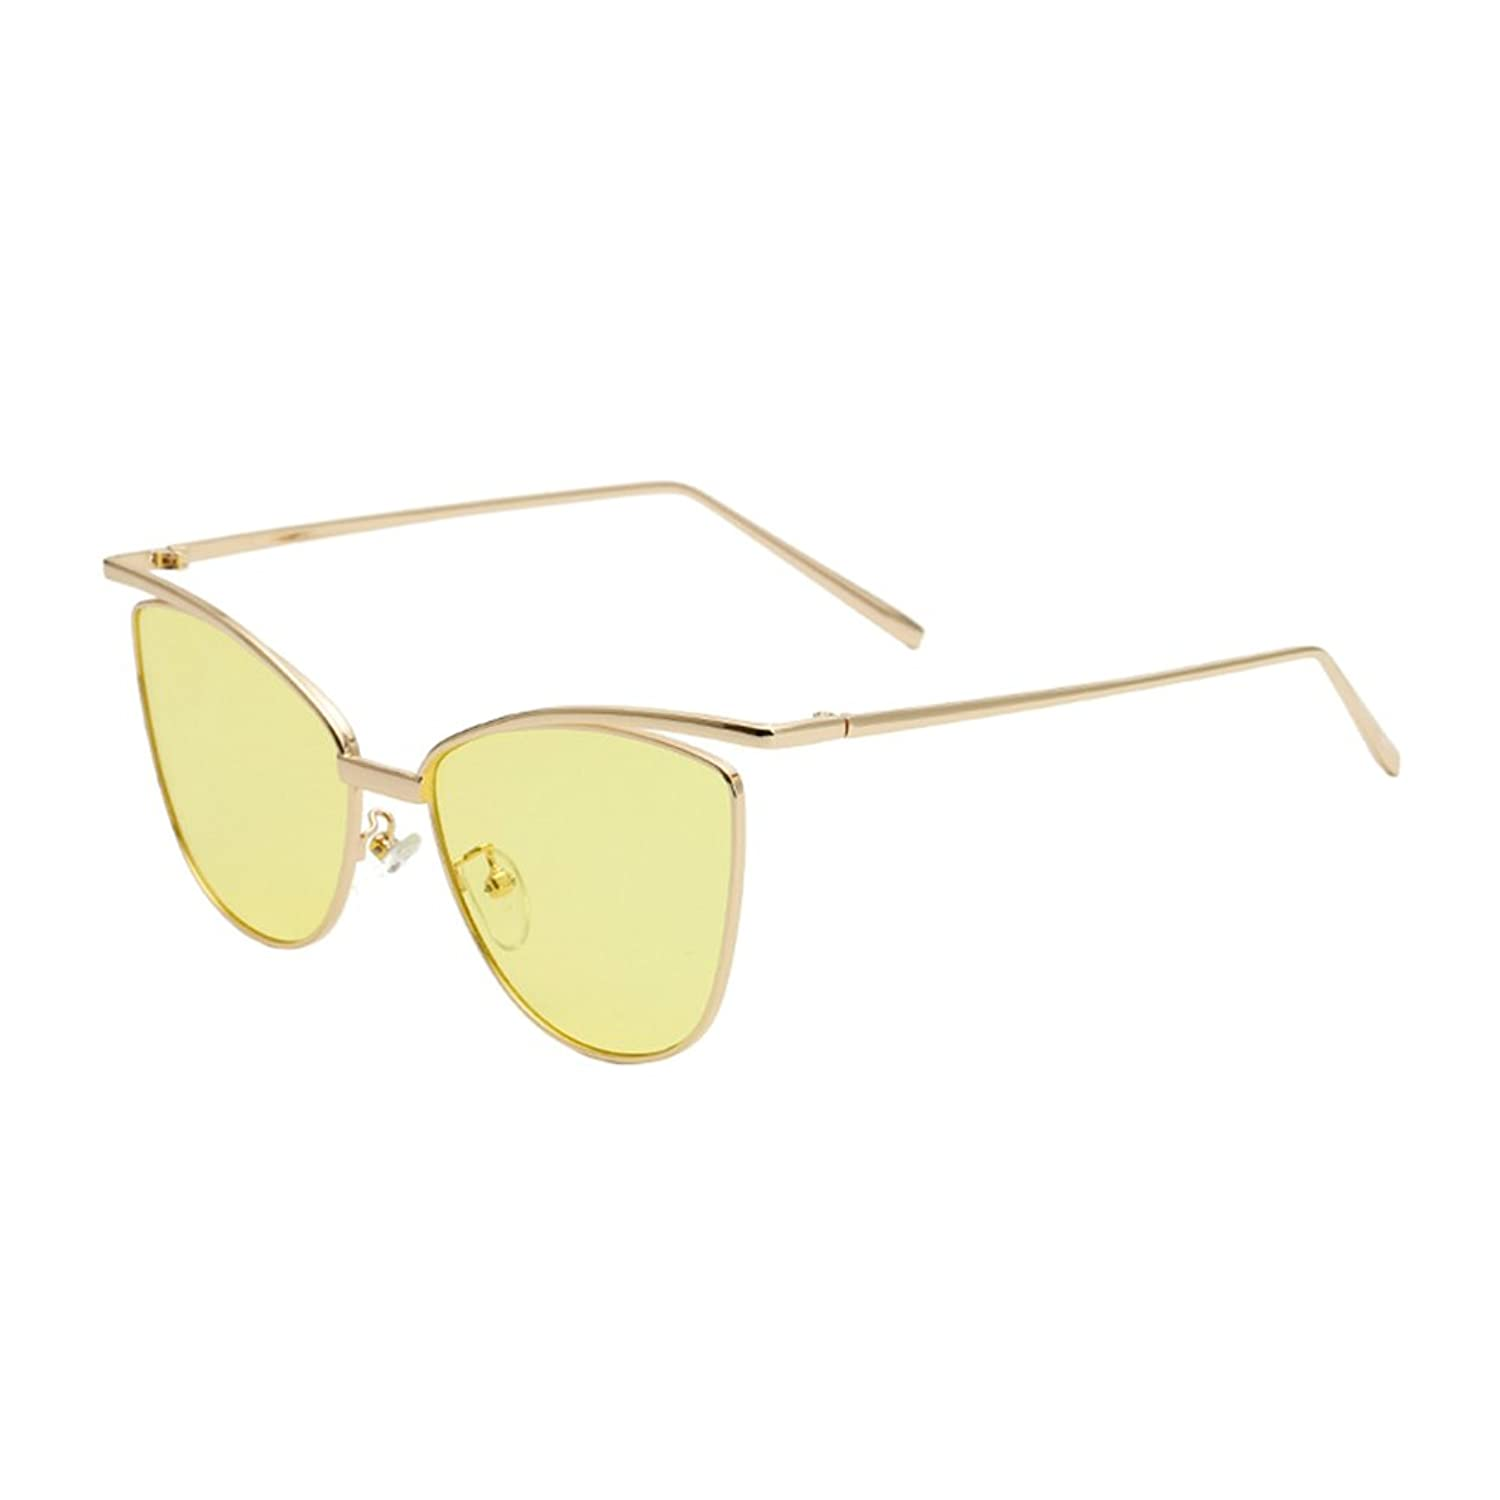 Coolsunny Womens Color Mirror mirrored Lens Oversize Cat Eye Sunglasses MC2262